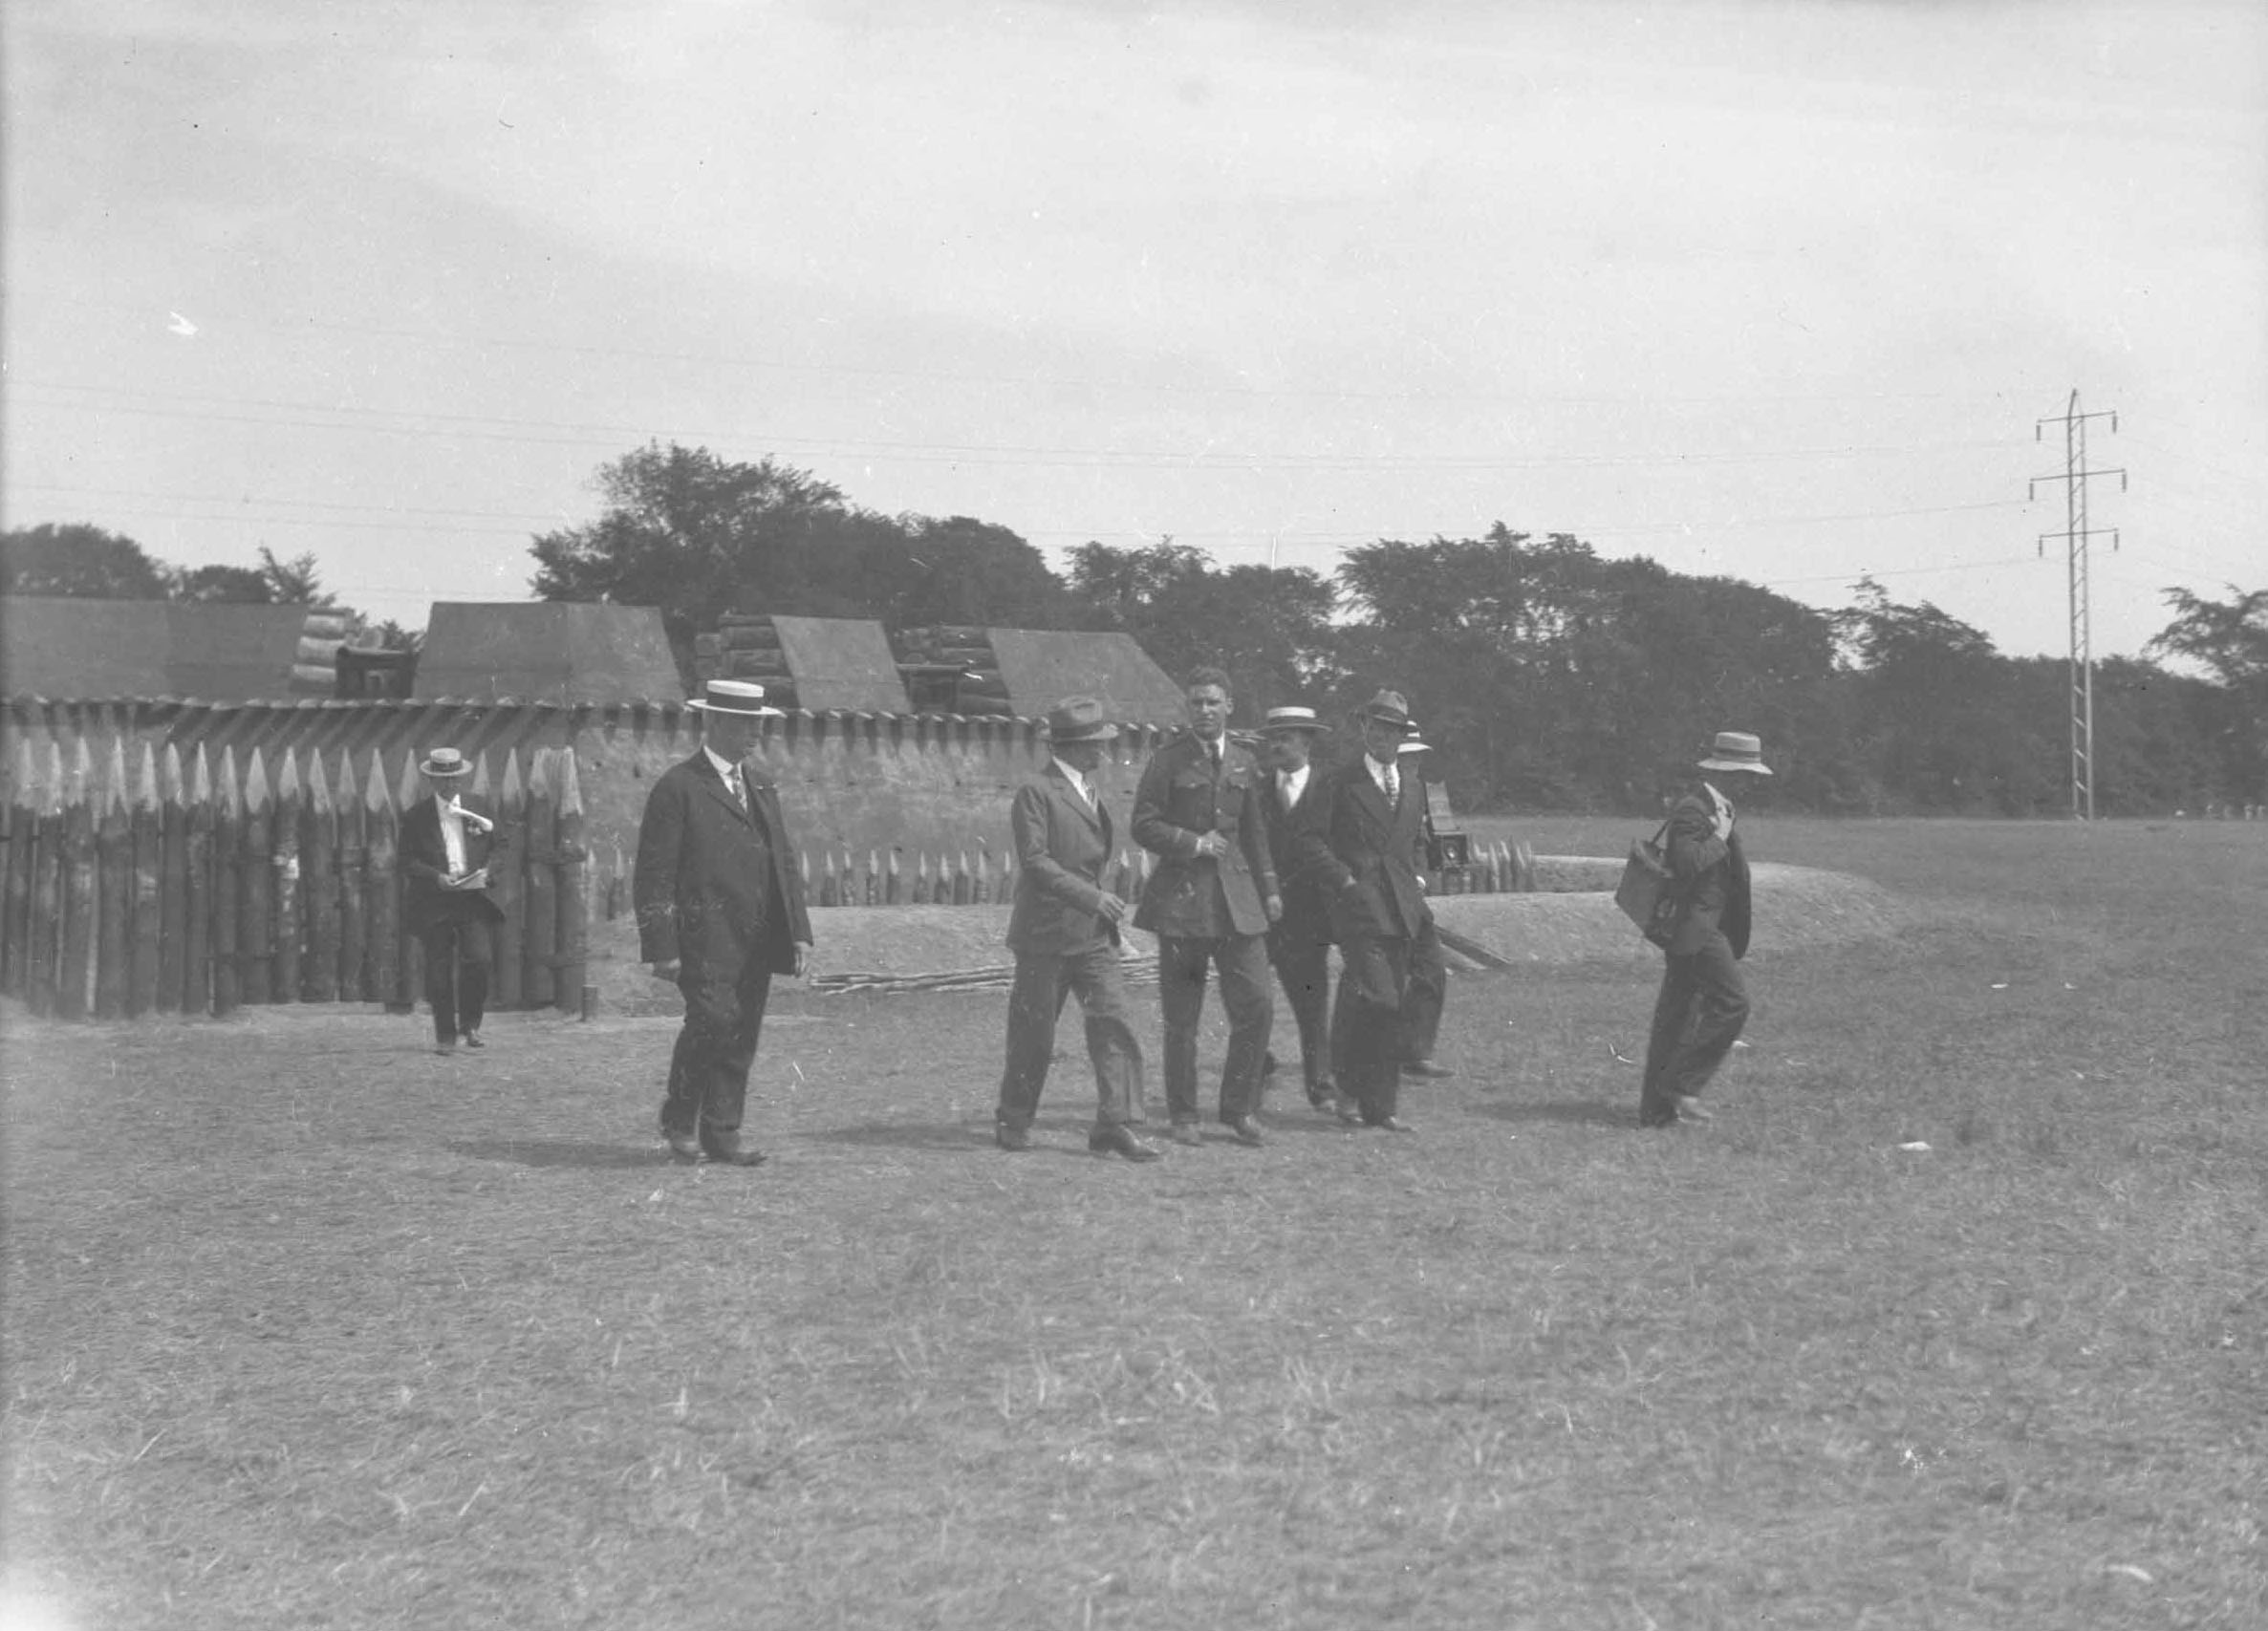 men in business suits walk in front of a tiny delicate looking fort with pickets and a ditch in the middle of a field